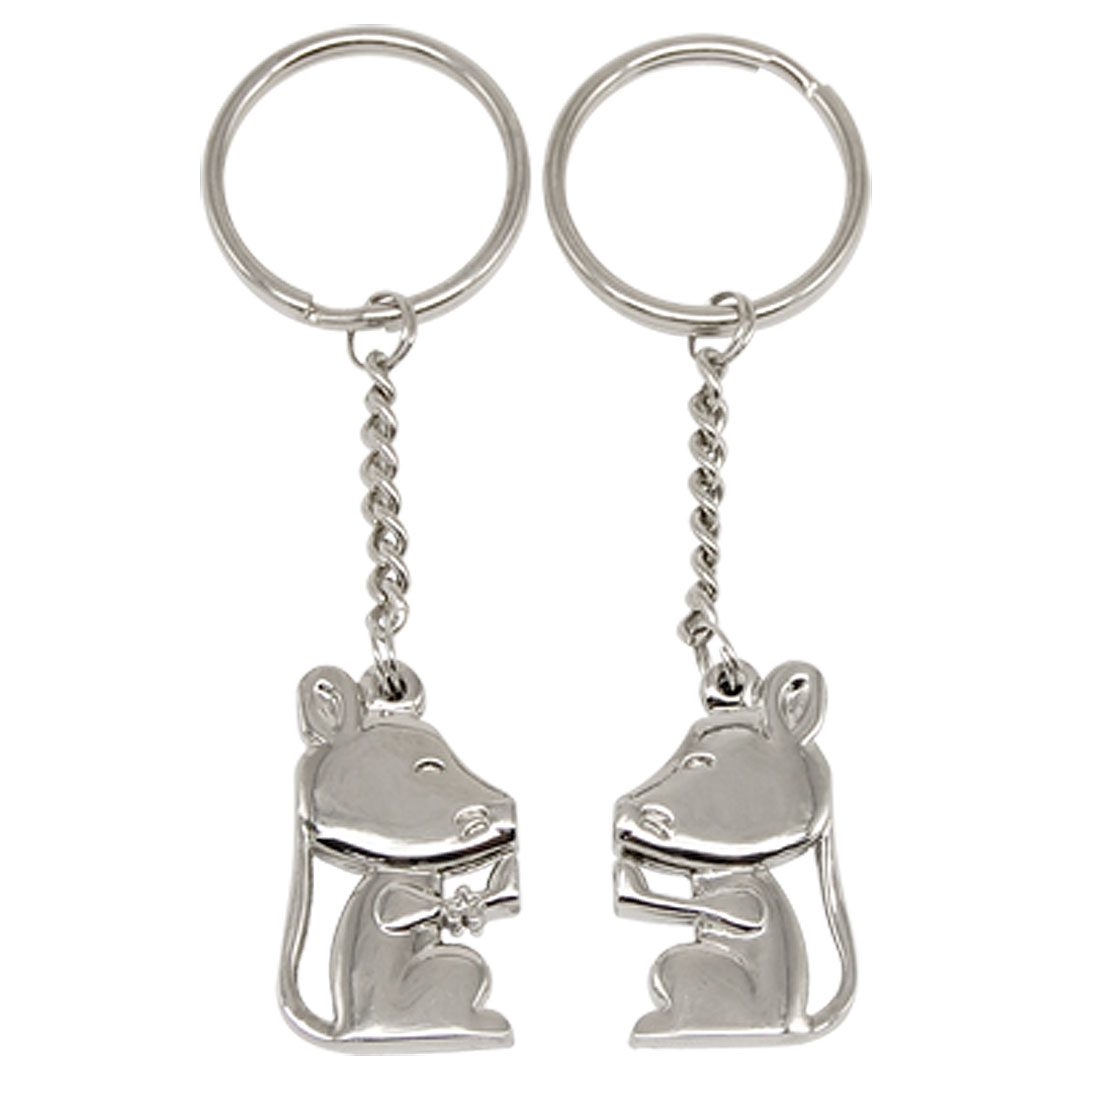 2PCS Magnetic Kissing Mouse Mice Silvery Key Chain Ring